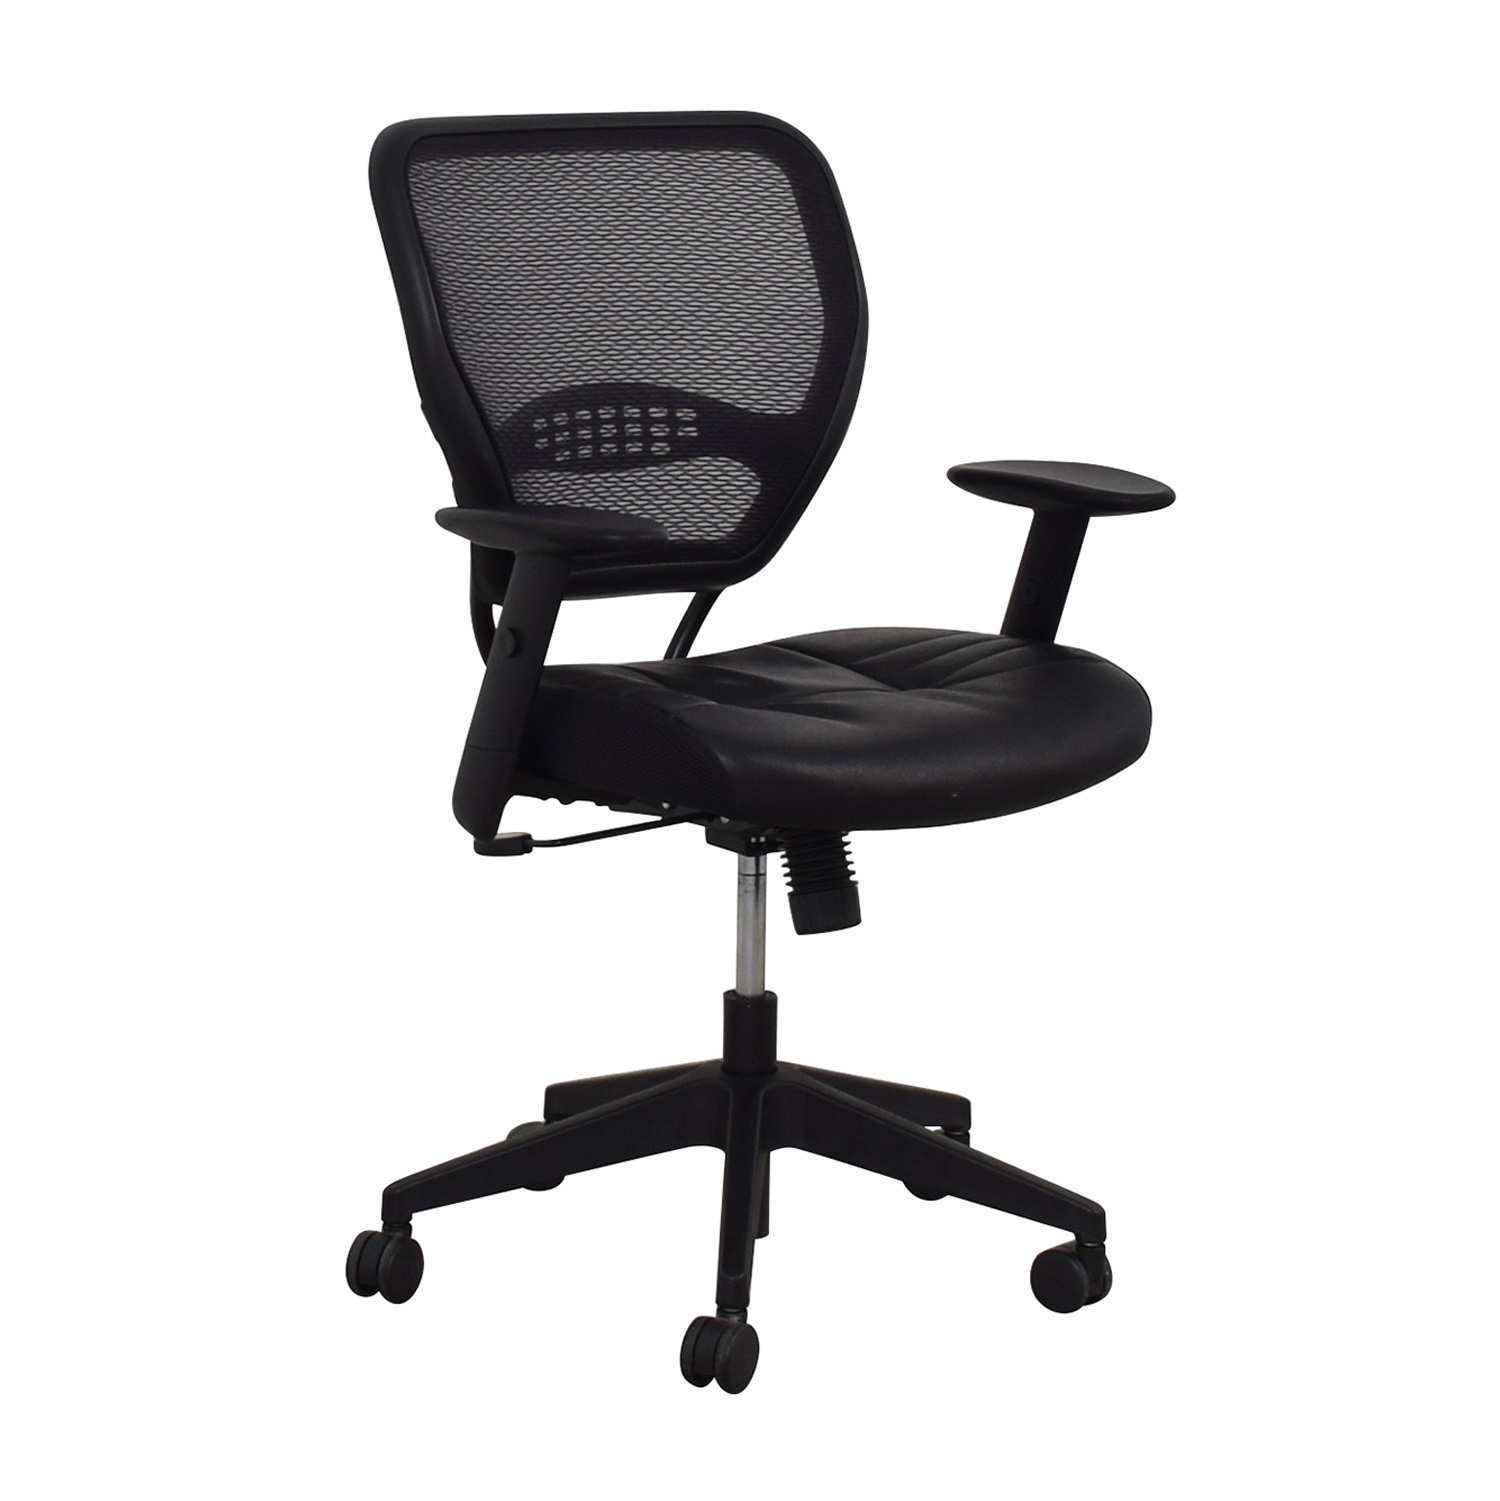 buy Aero Aero Black Mesh Desk Chair online